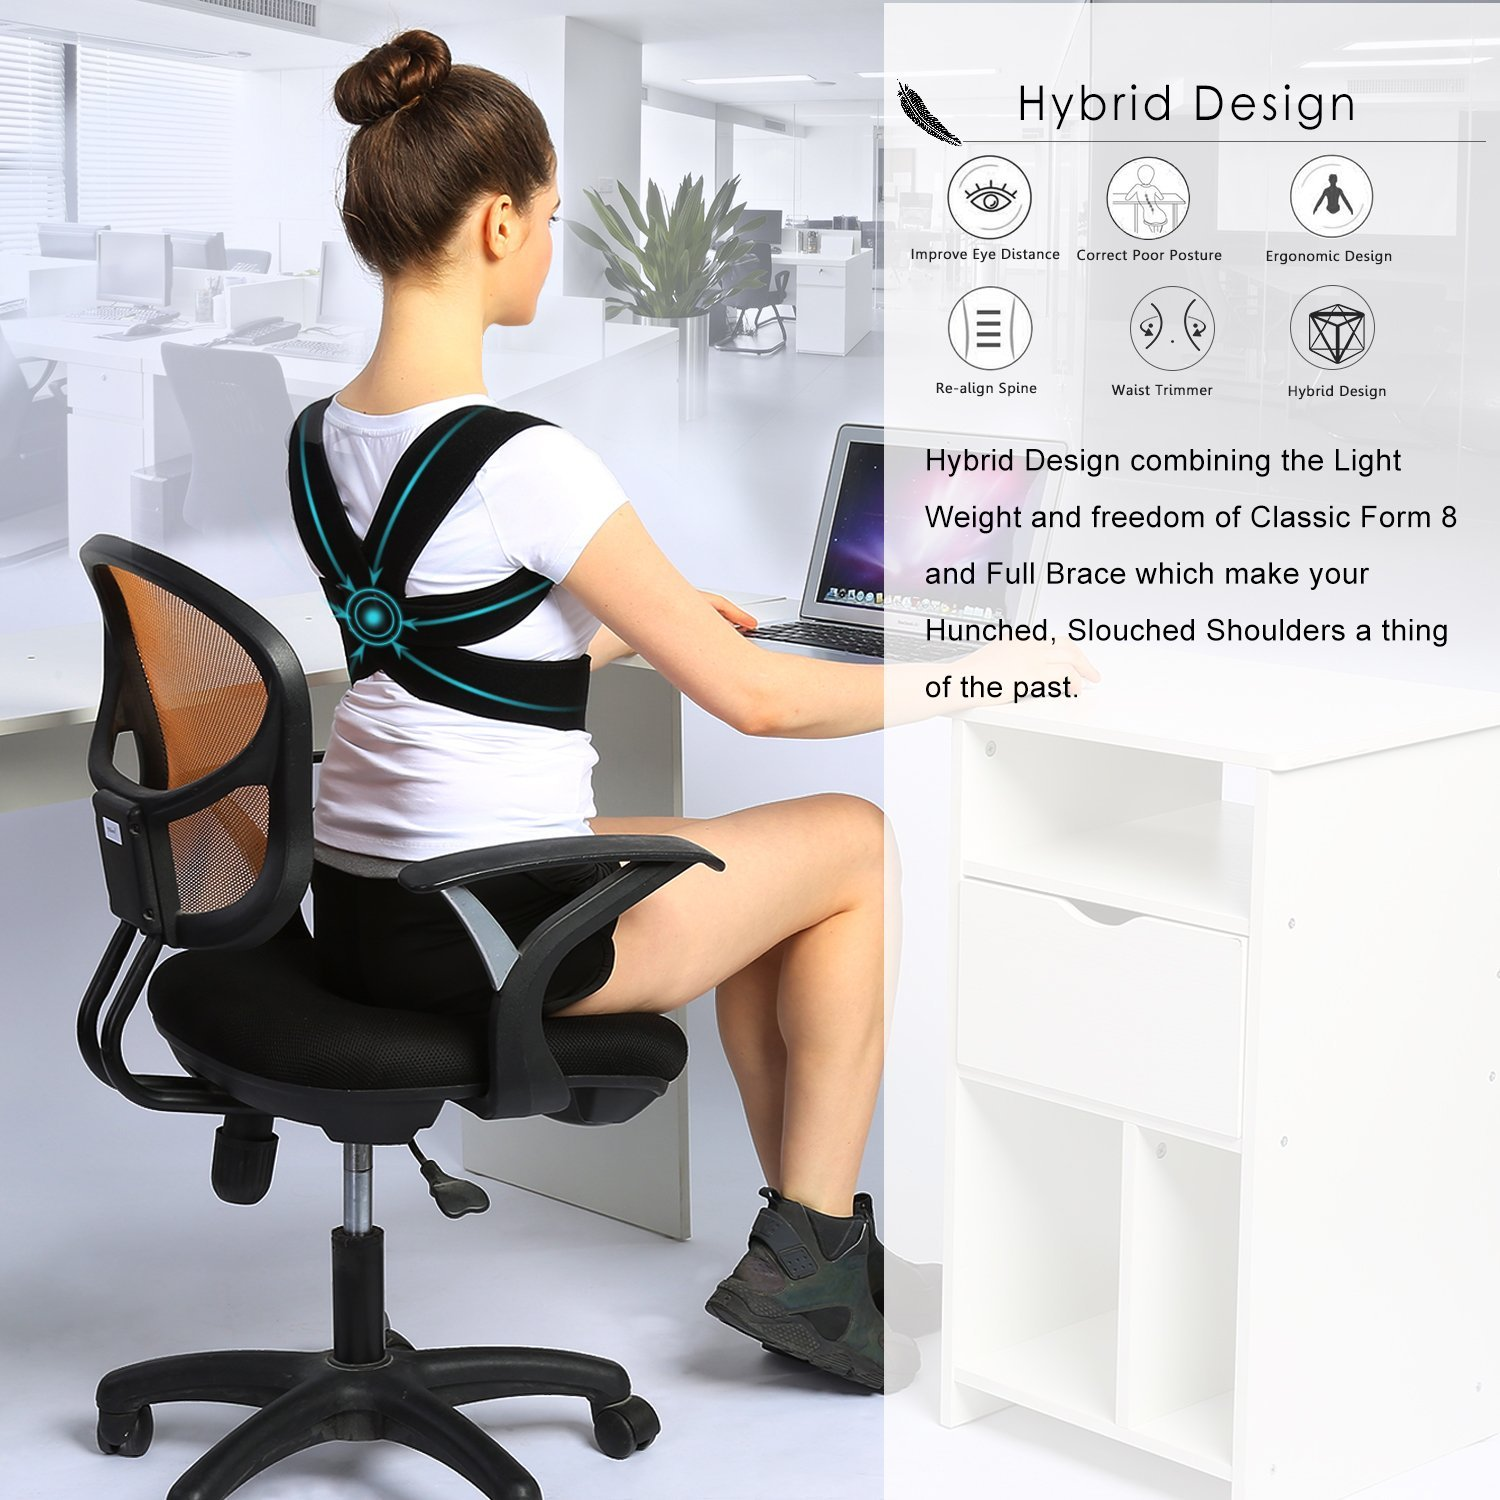 posture corrector for office chair desk za brace and clavicle support straightener with comfortable neoprene upper back shoulder forward head neck aid women men m 28 35